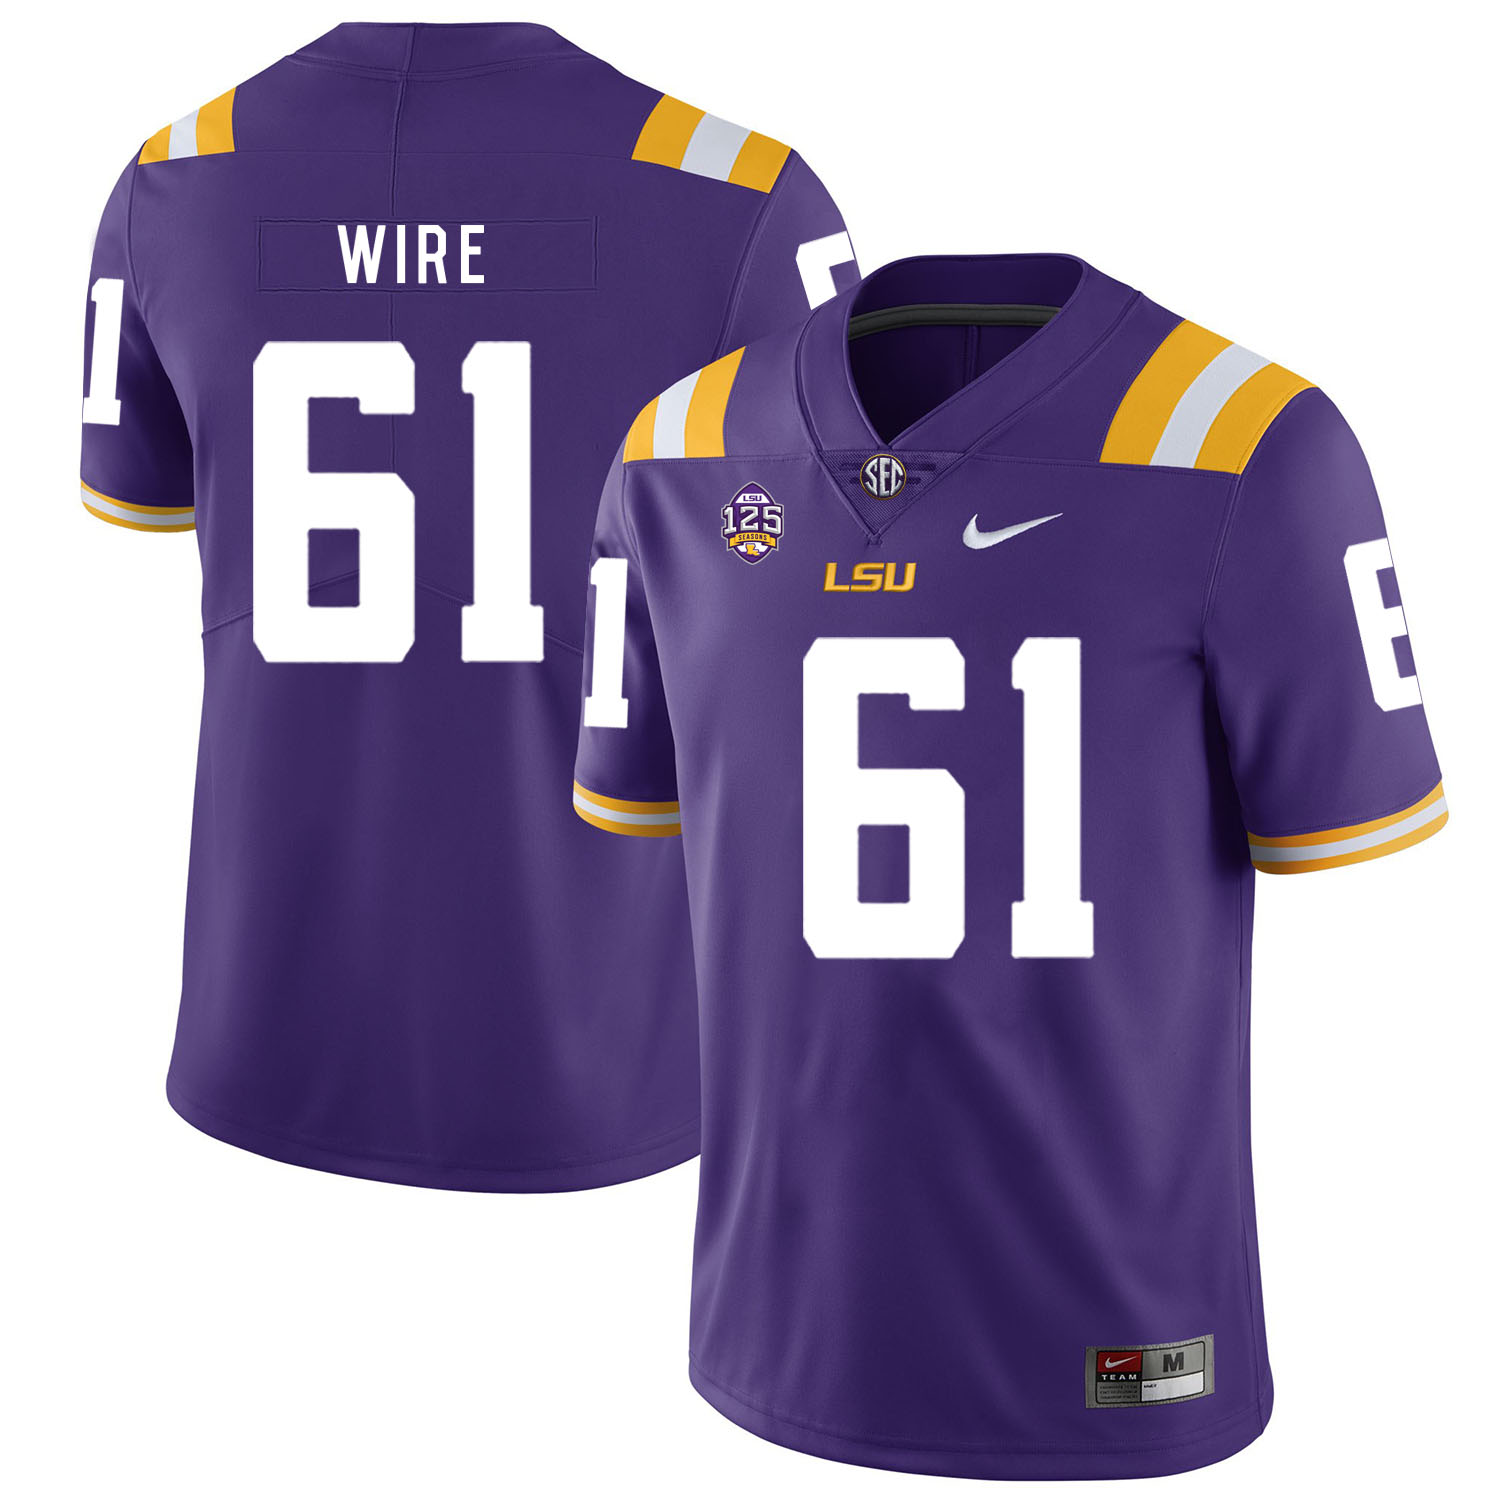 LSU Tigers 61 Cameron Wire Purple Nike College Football Jersey